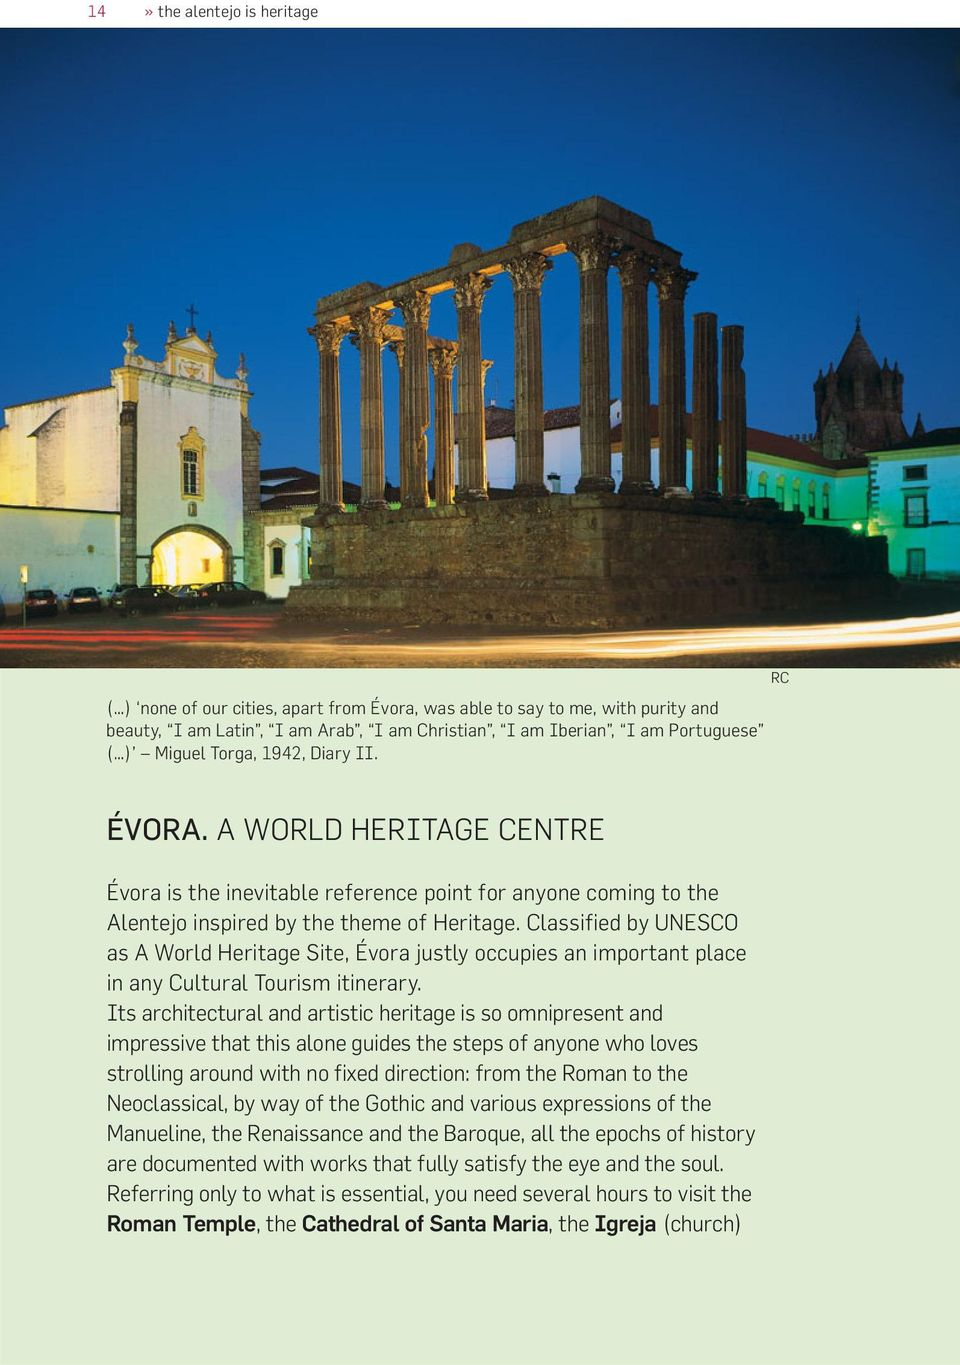 Classified by UNESCO as A World Heritage Site, Évora justly occupies an important place in any Cultural Tourism itinerary.